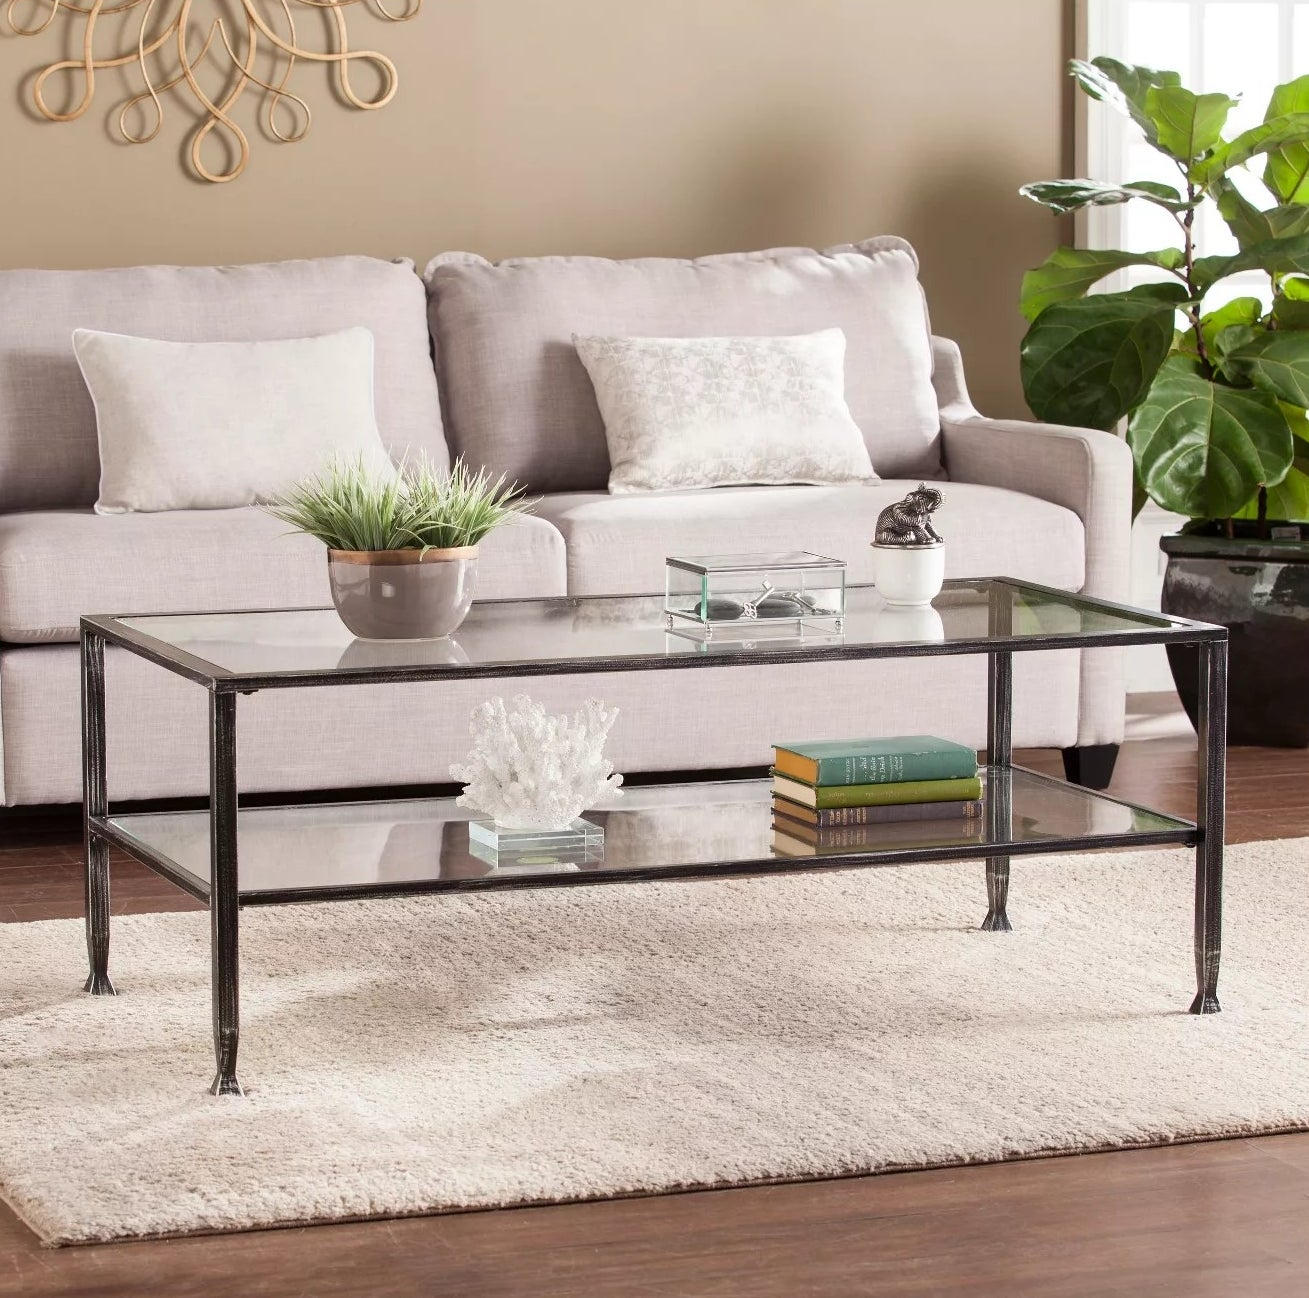 The glass two-level coffee table